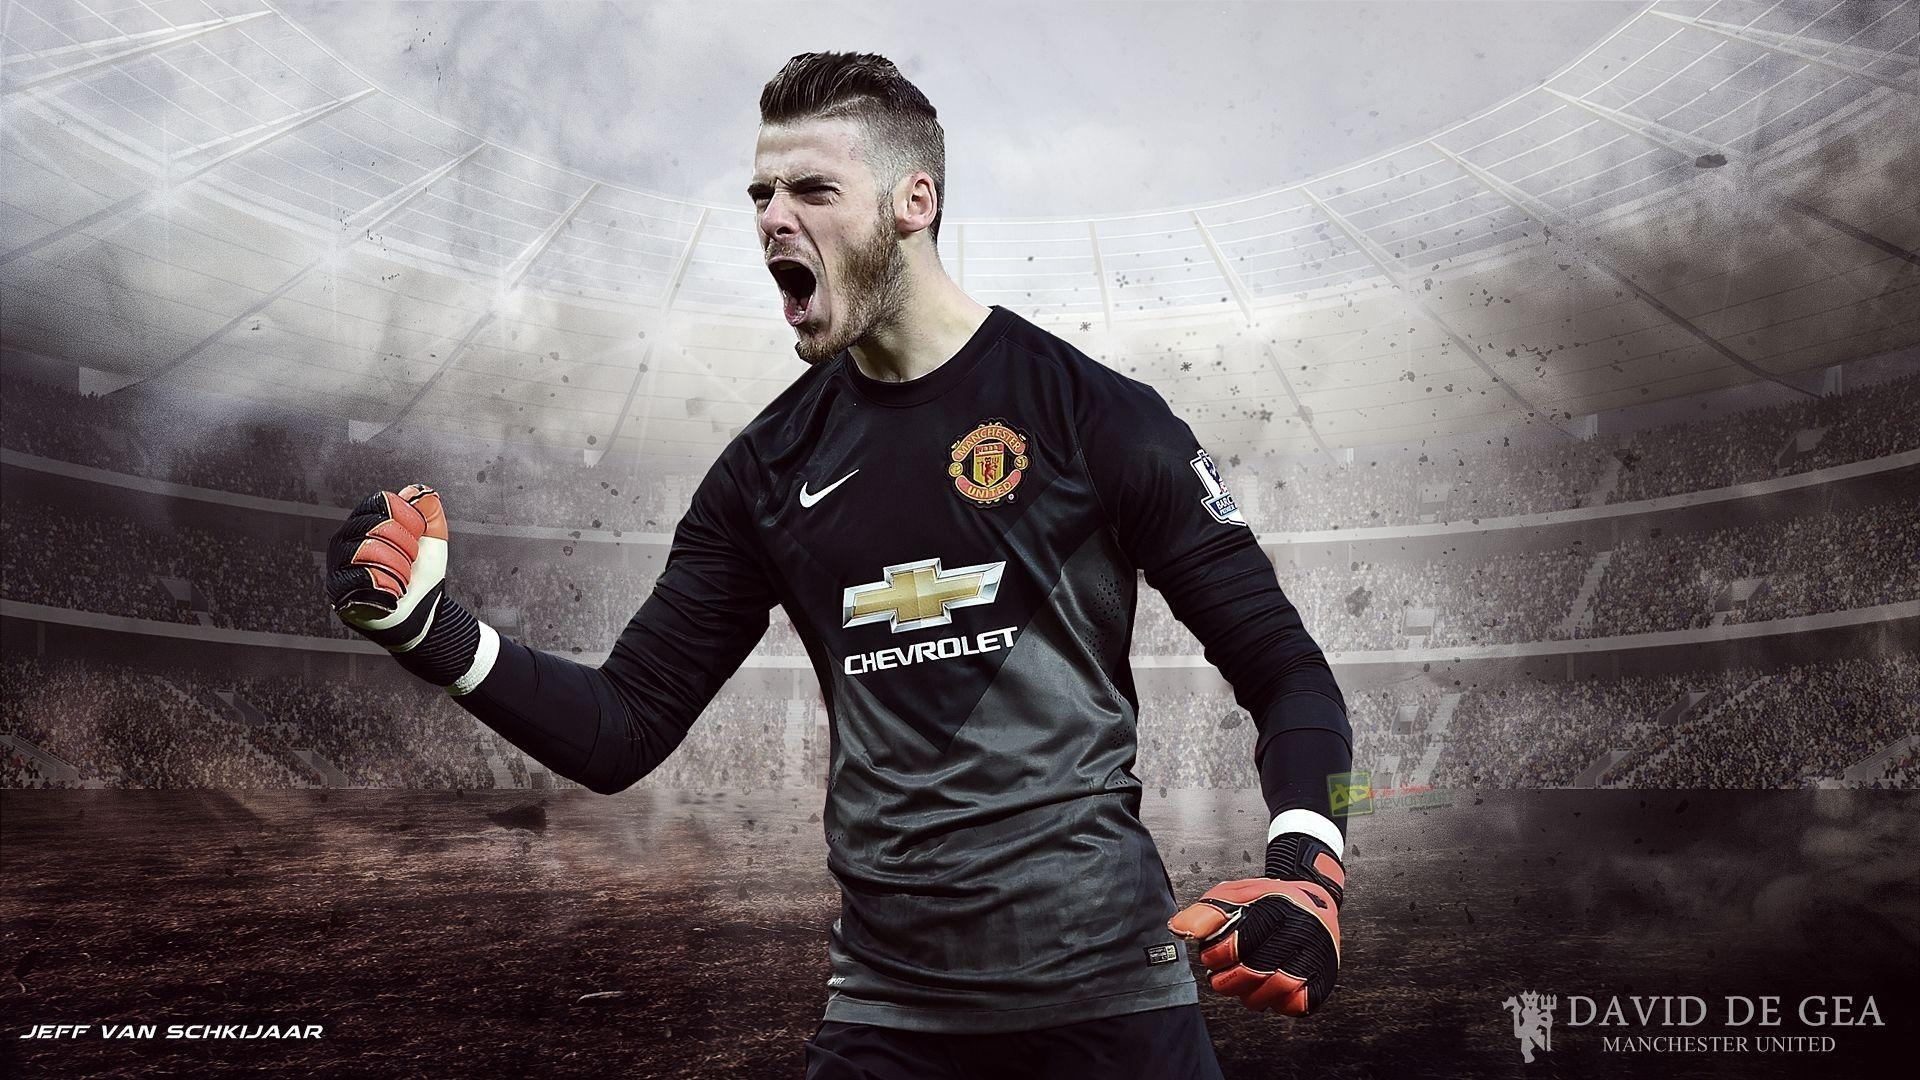 10 Top David De Gea Wallpapers FULL HD 1920×1080 For PC Background